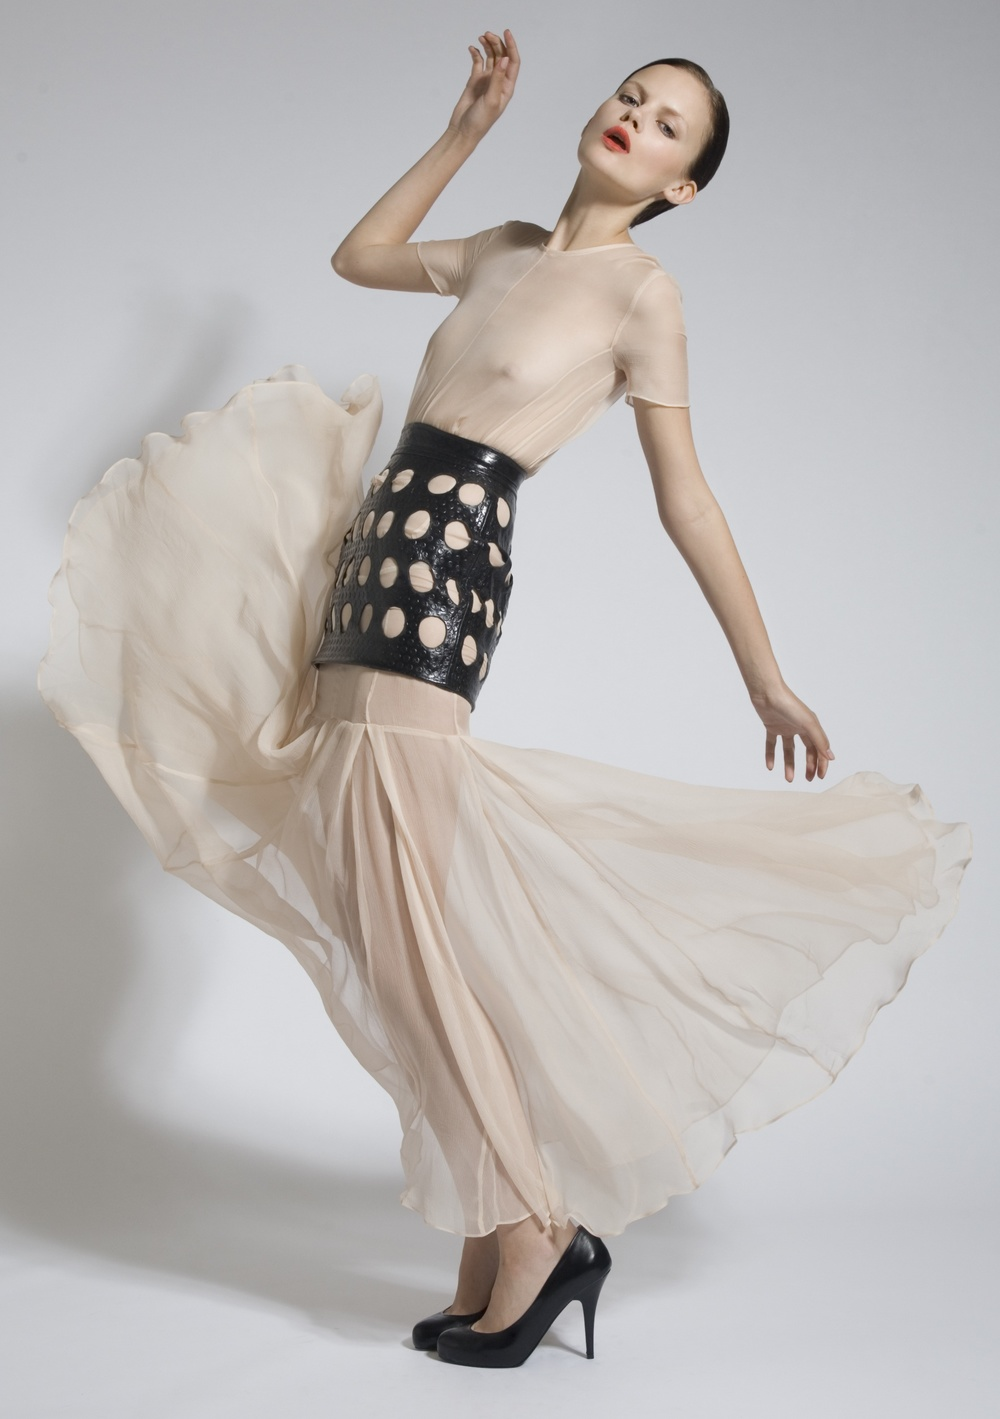 10 Chiffon Pleat Dress, Leather Laser Cut Skirt.jpg